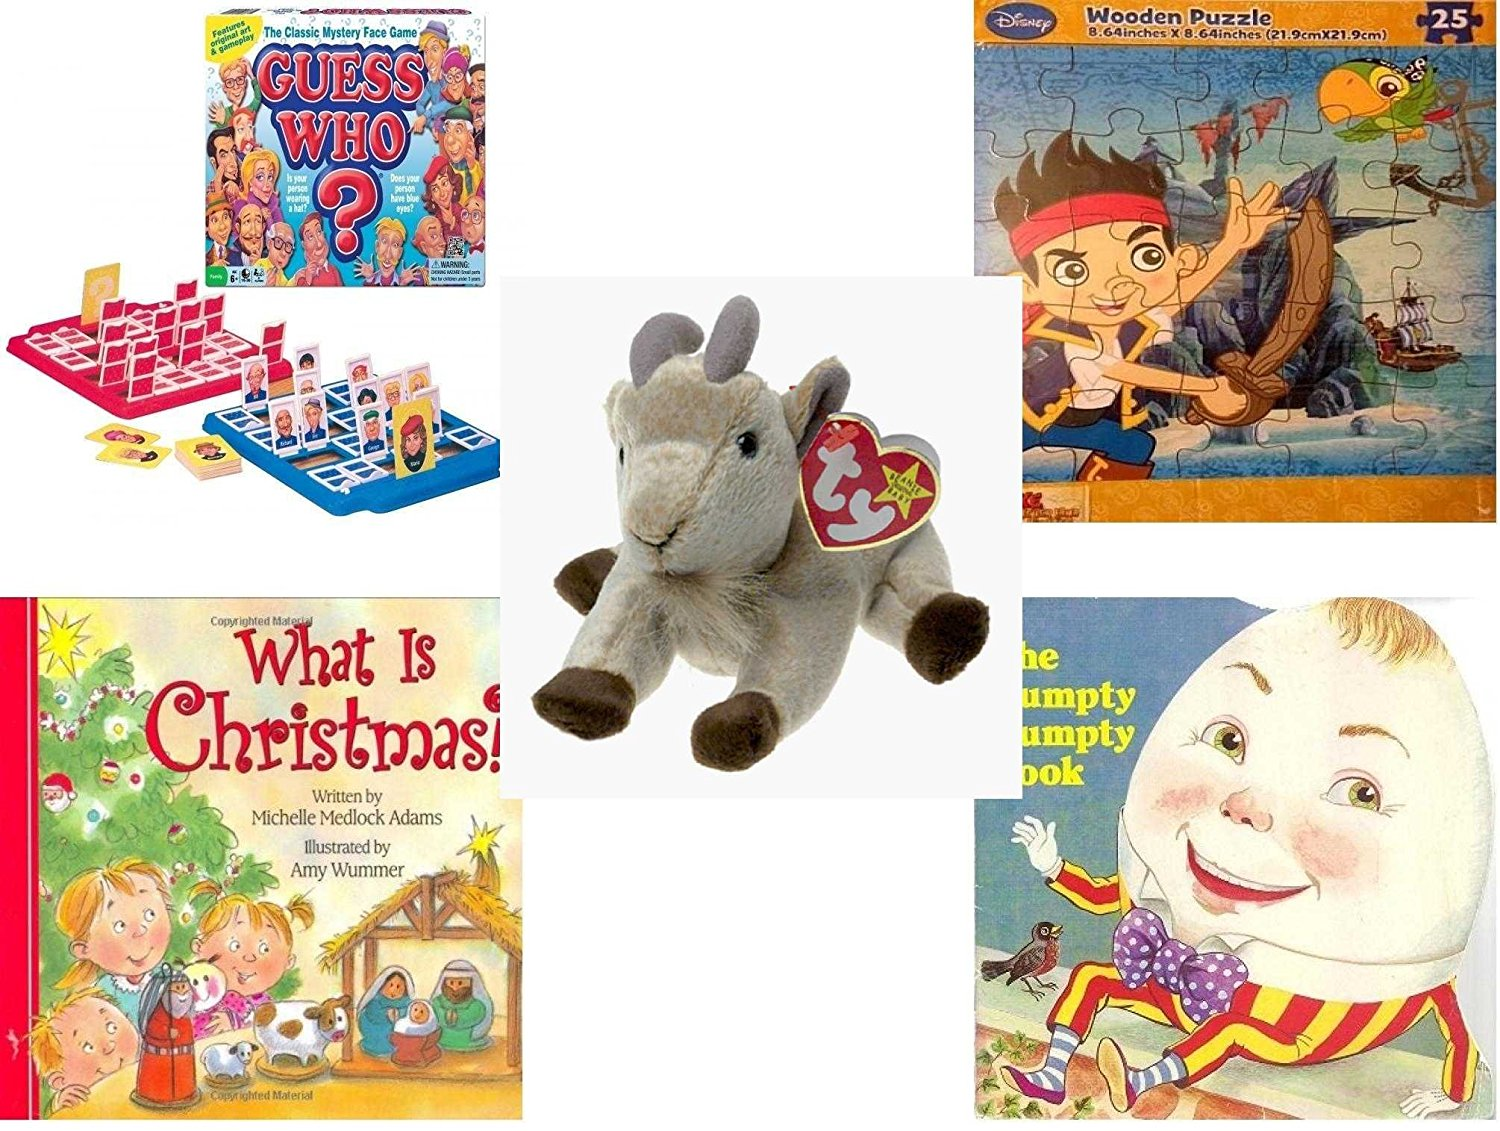 Children's Gift Bundle - Ages 3-5 [5 Piece] - Guess Who? Board Game - Disney Jake and The Never Land Pirates Puzzle Toy - TY Beanie Baby - GOATEE the Goat - What Is Christmas? Board Book - The Hump